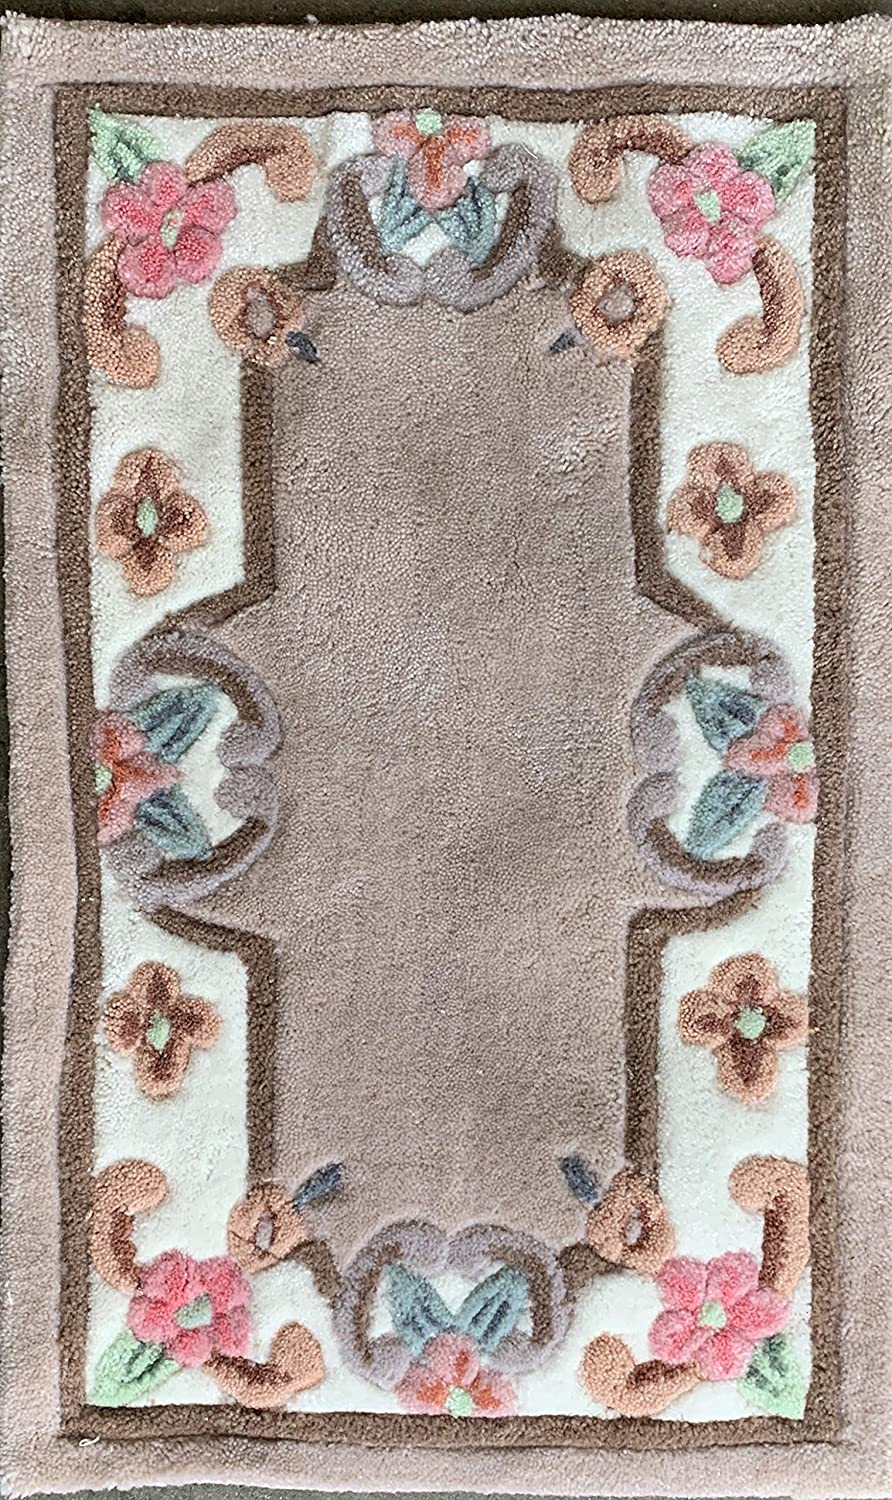 Carpet King Traditional Doormat Persian Handmade Floral Area Rug Beige Ivory Mauve Green Design (18 Inch X 29 Inch)